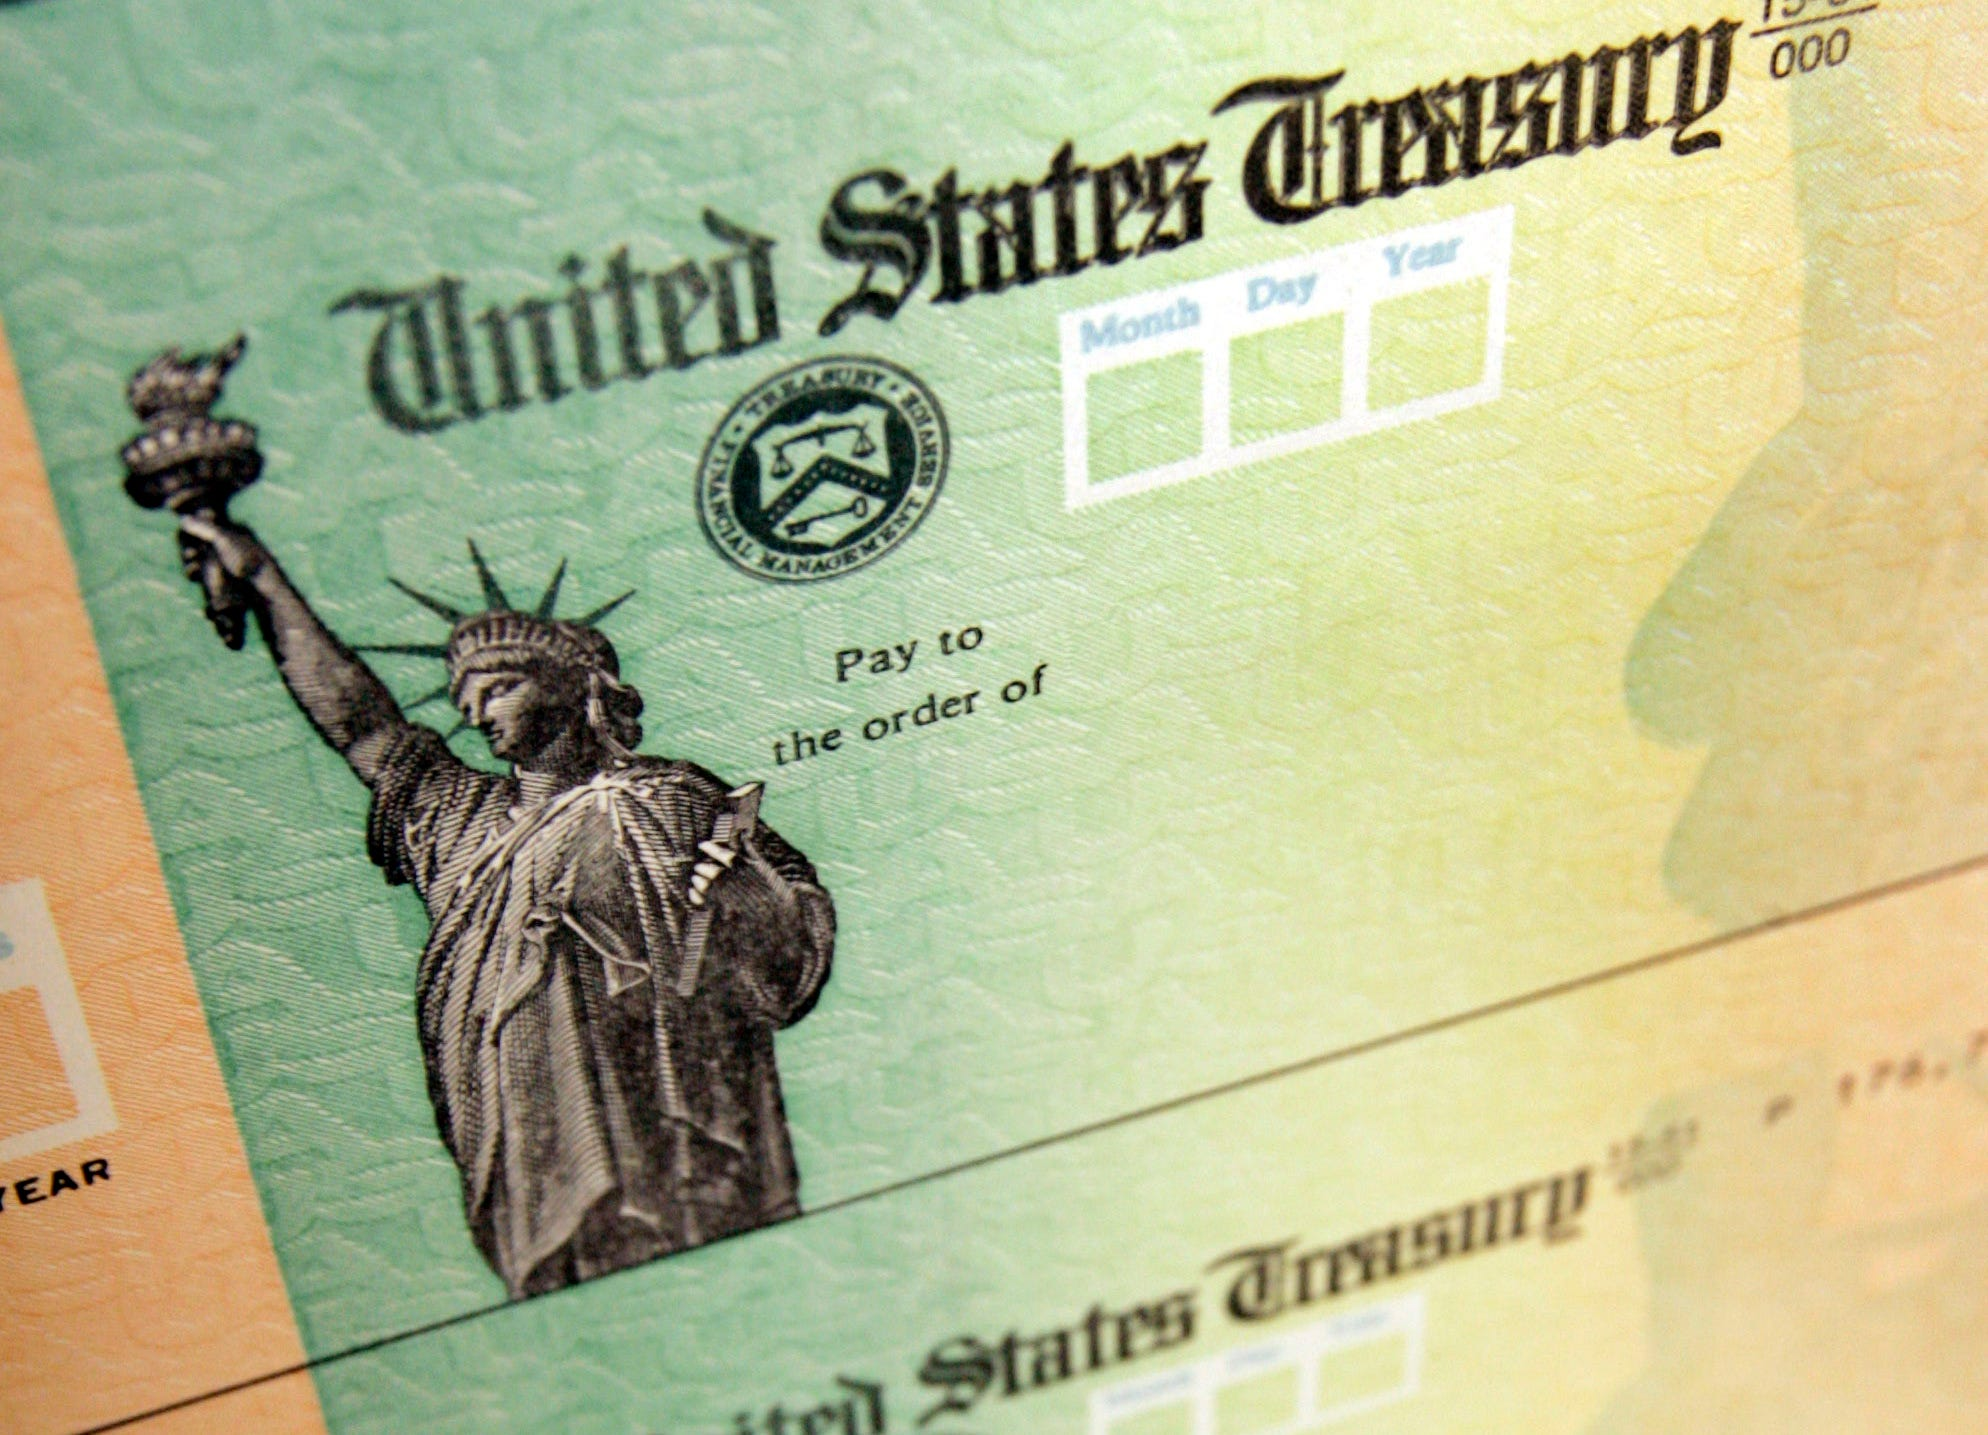 Legislation signed in New York preventing stimulus checks from being taken by debt collectors